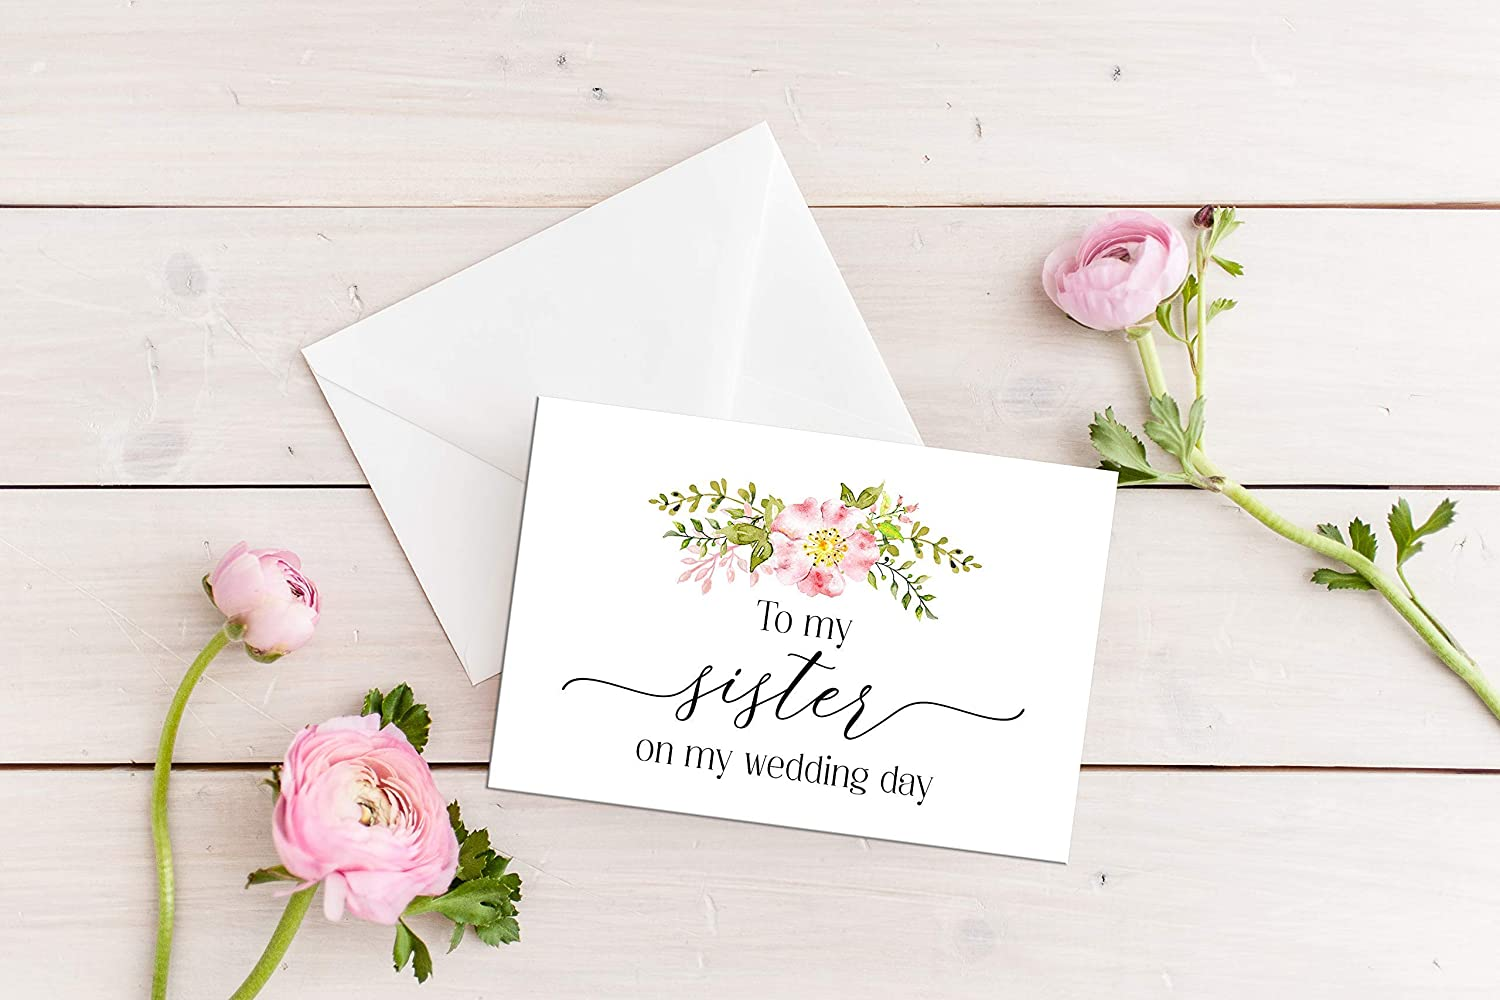 Bridal Party Gift Sister Card Disney Wedding Cards Bridesmaid Gifts Cute To My Sister on My Wedding Day Card Sister Gift Disney